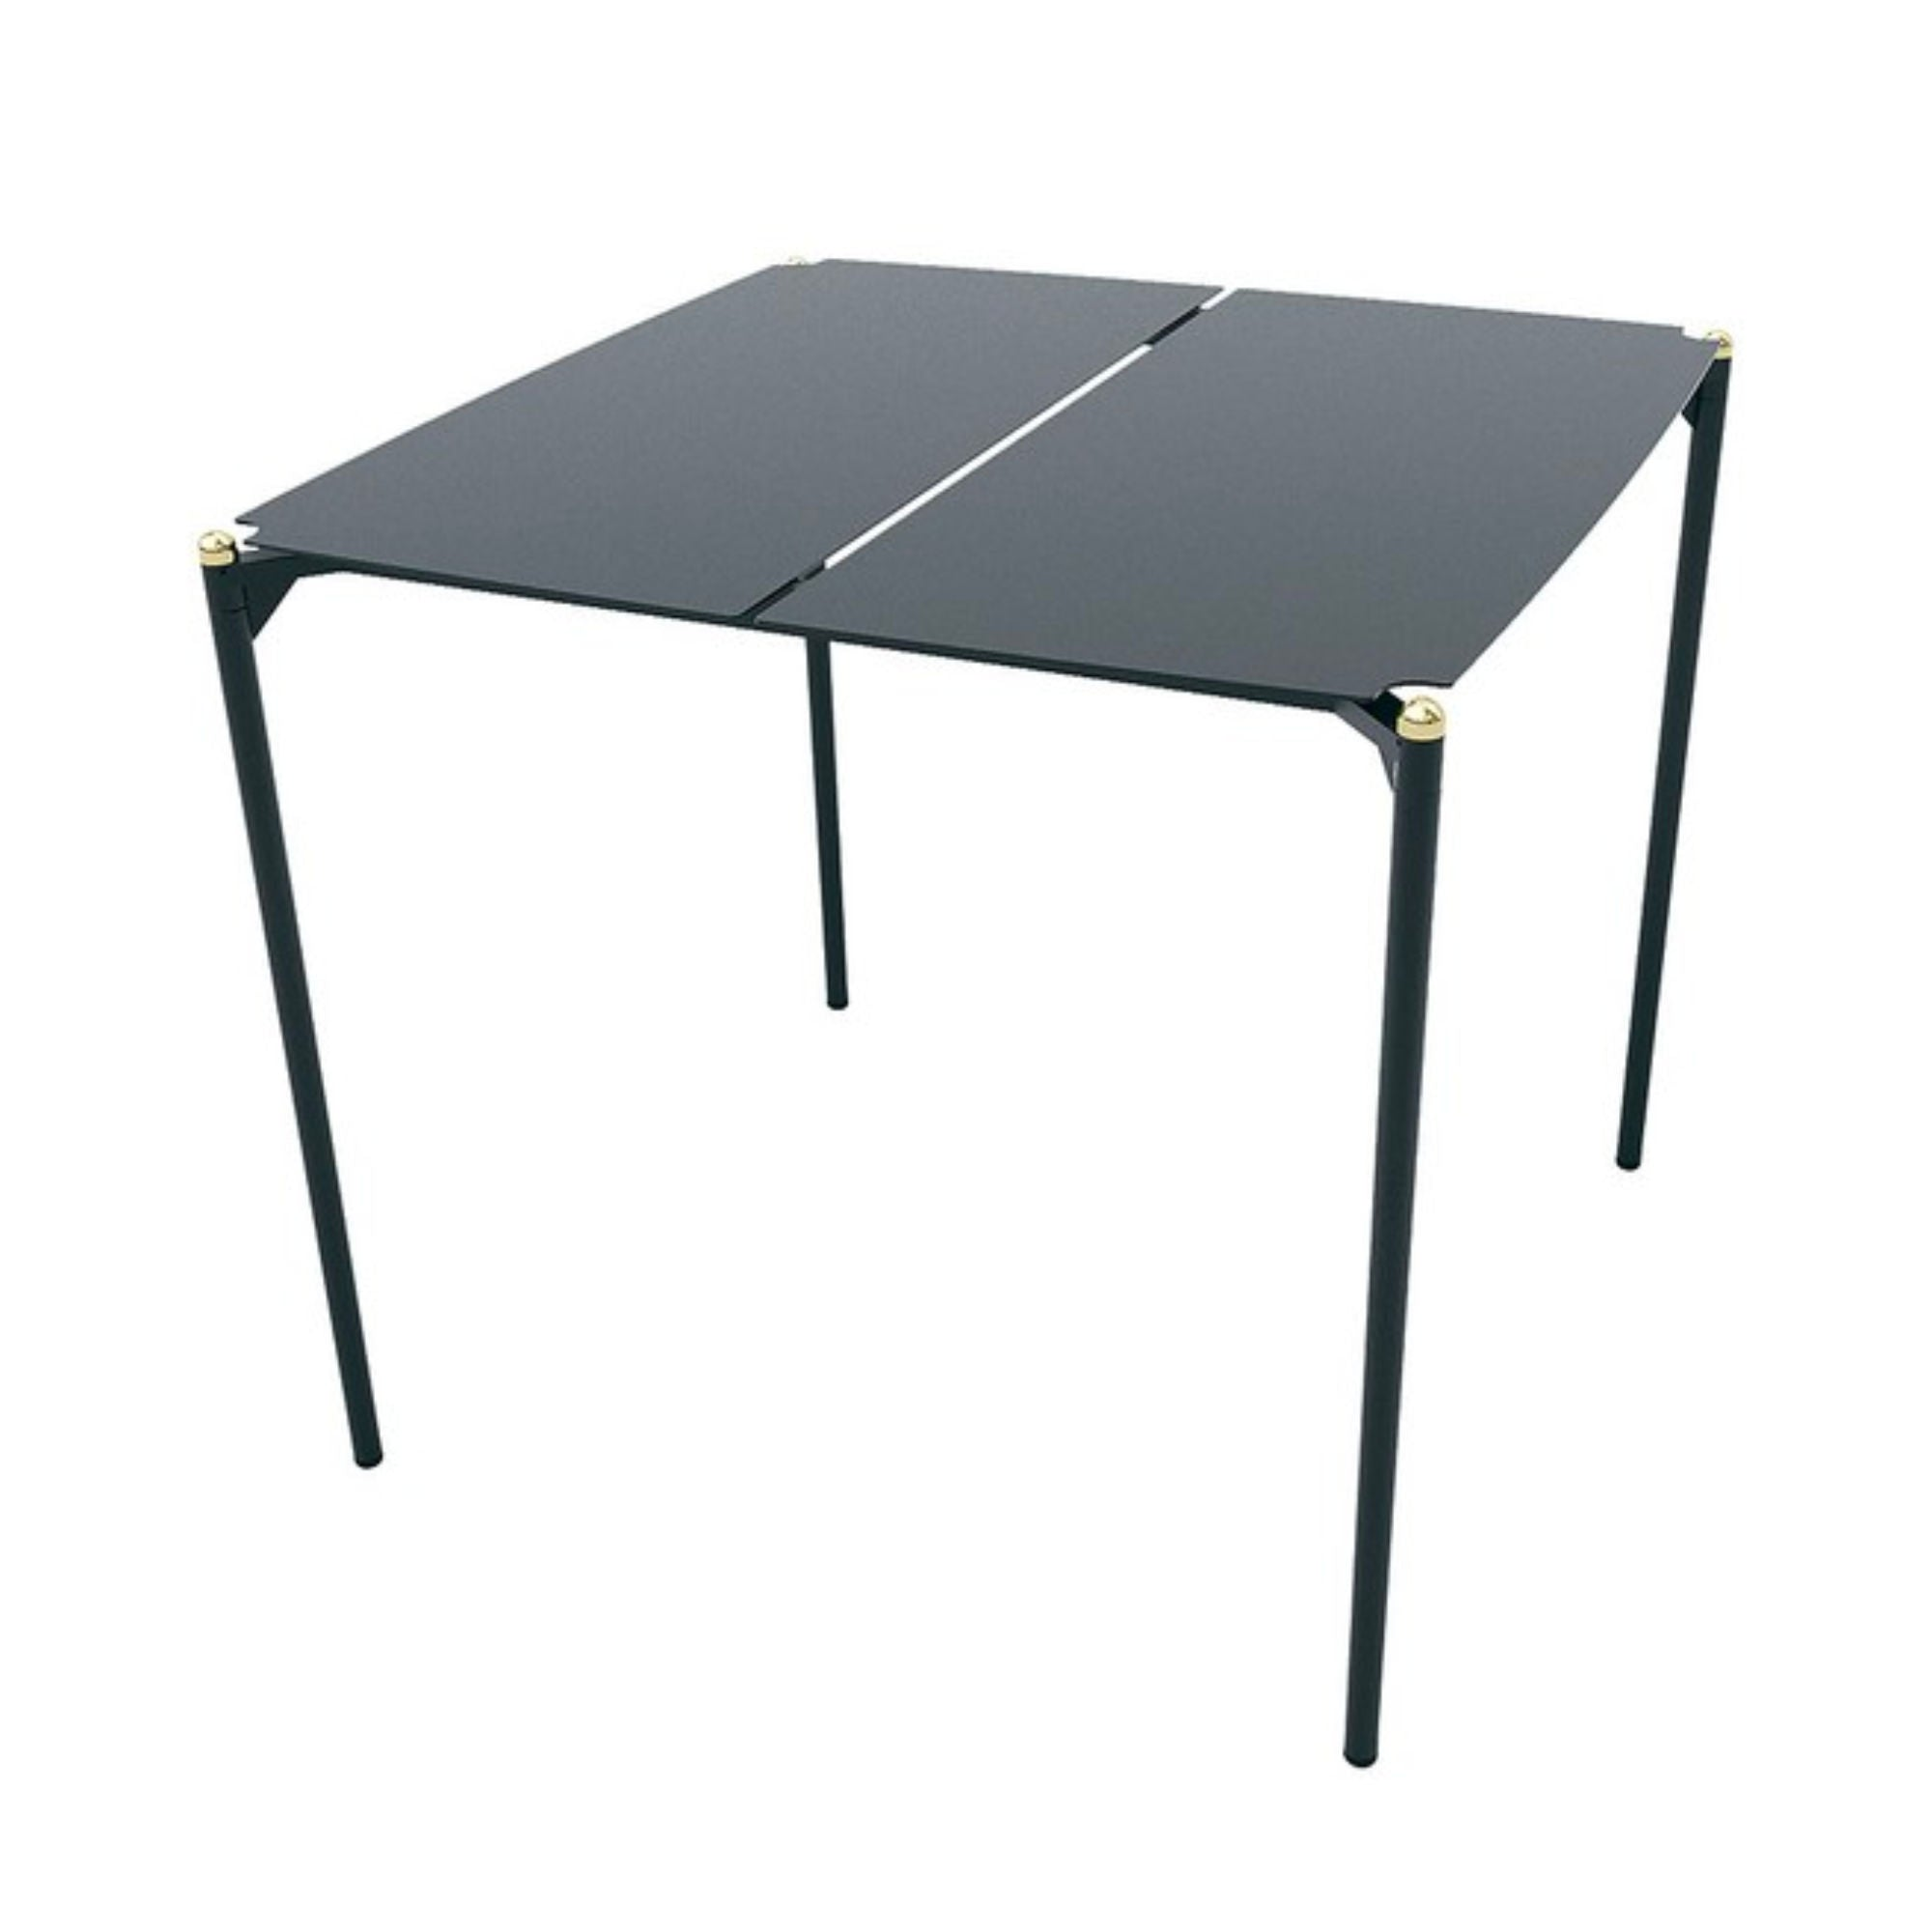 Aytm Novo Outdoor Dining Table Square , black - gold